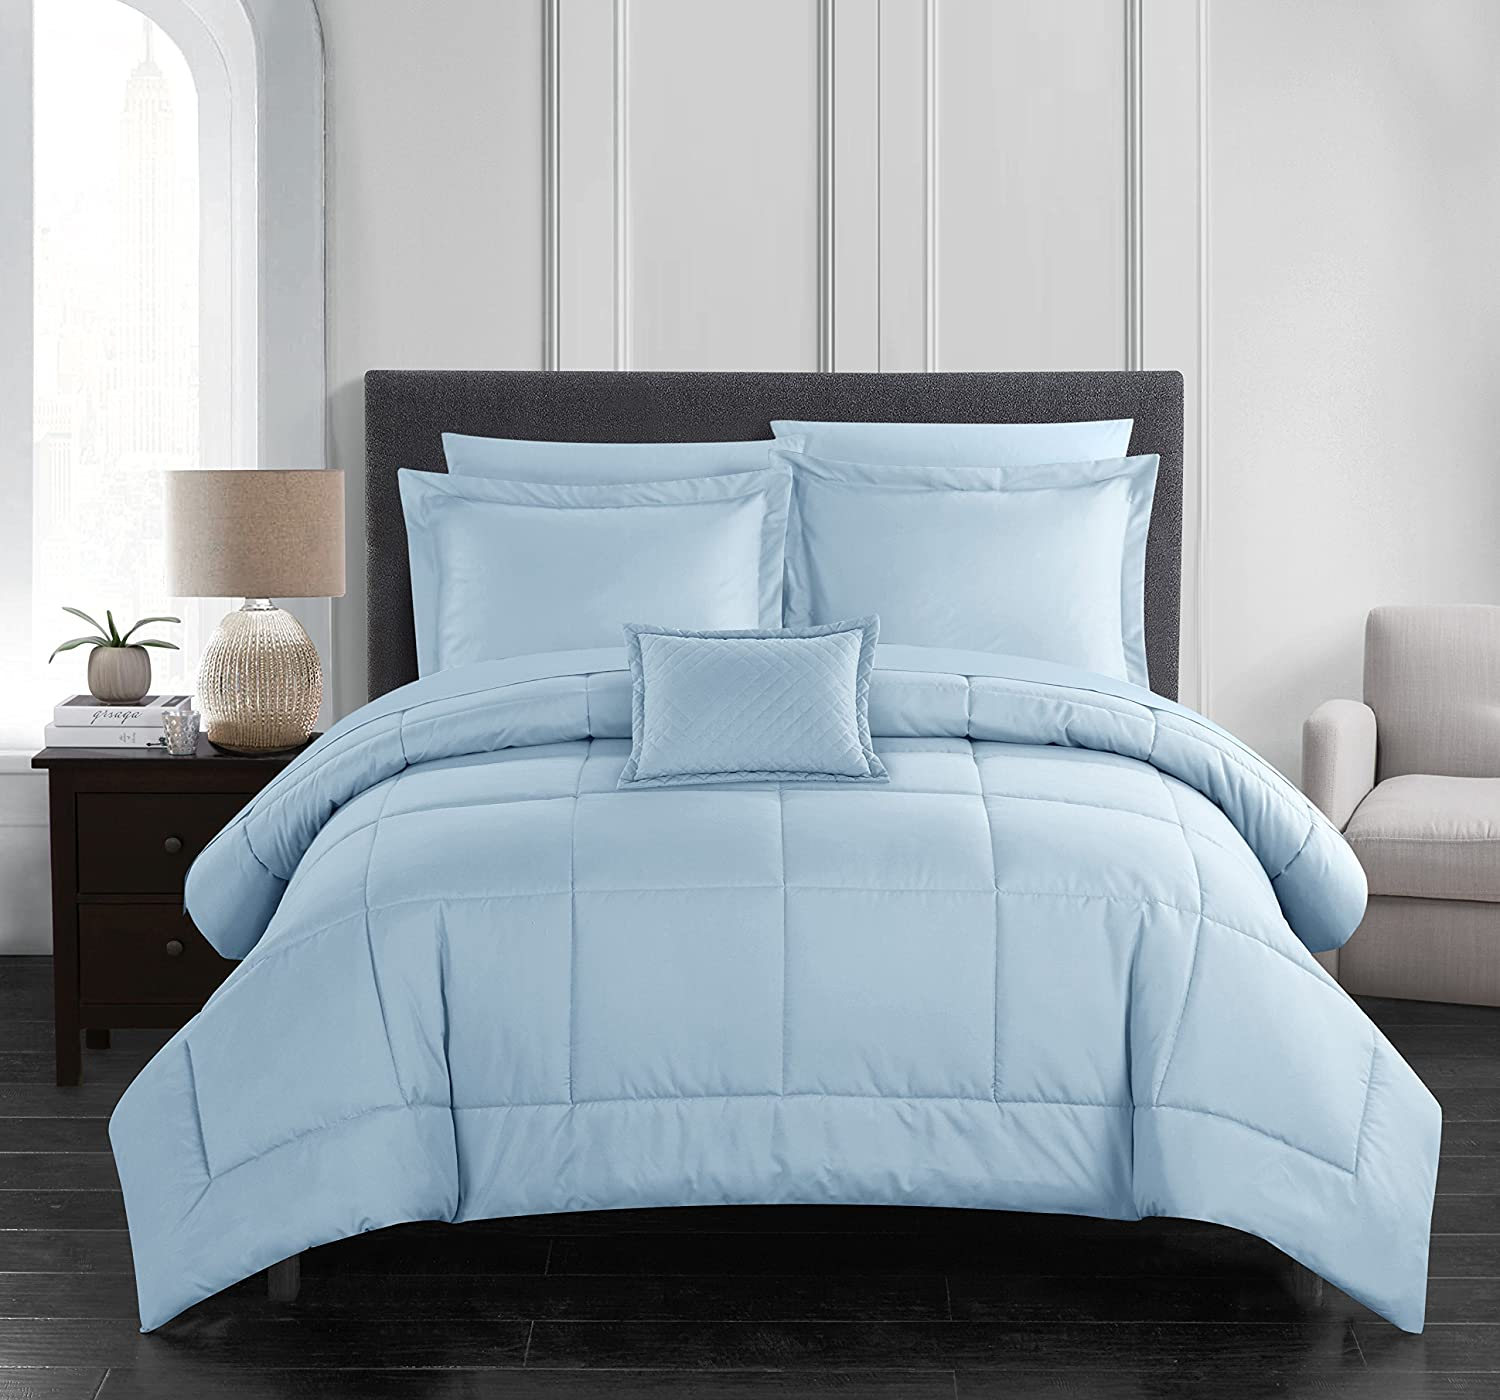 Amazon Com Chic Home Jordyn 6 Comforter Set Pieced Solid Color Stitched Design Complete Bag Bedding Sheets Decorative Pillow Sham Included Twin Blue Home Kitchen